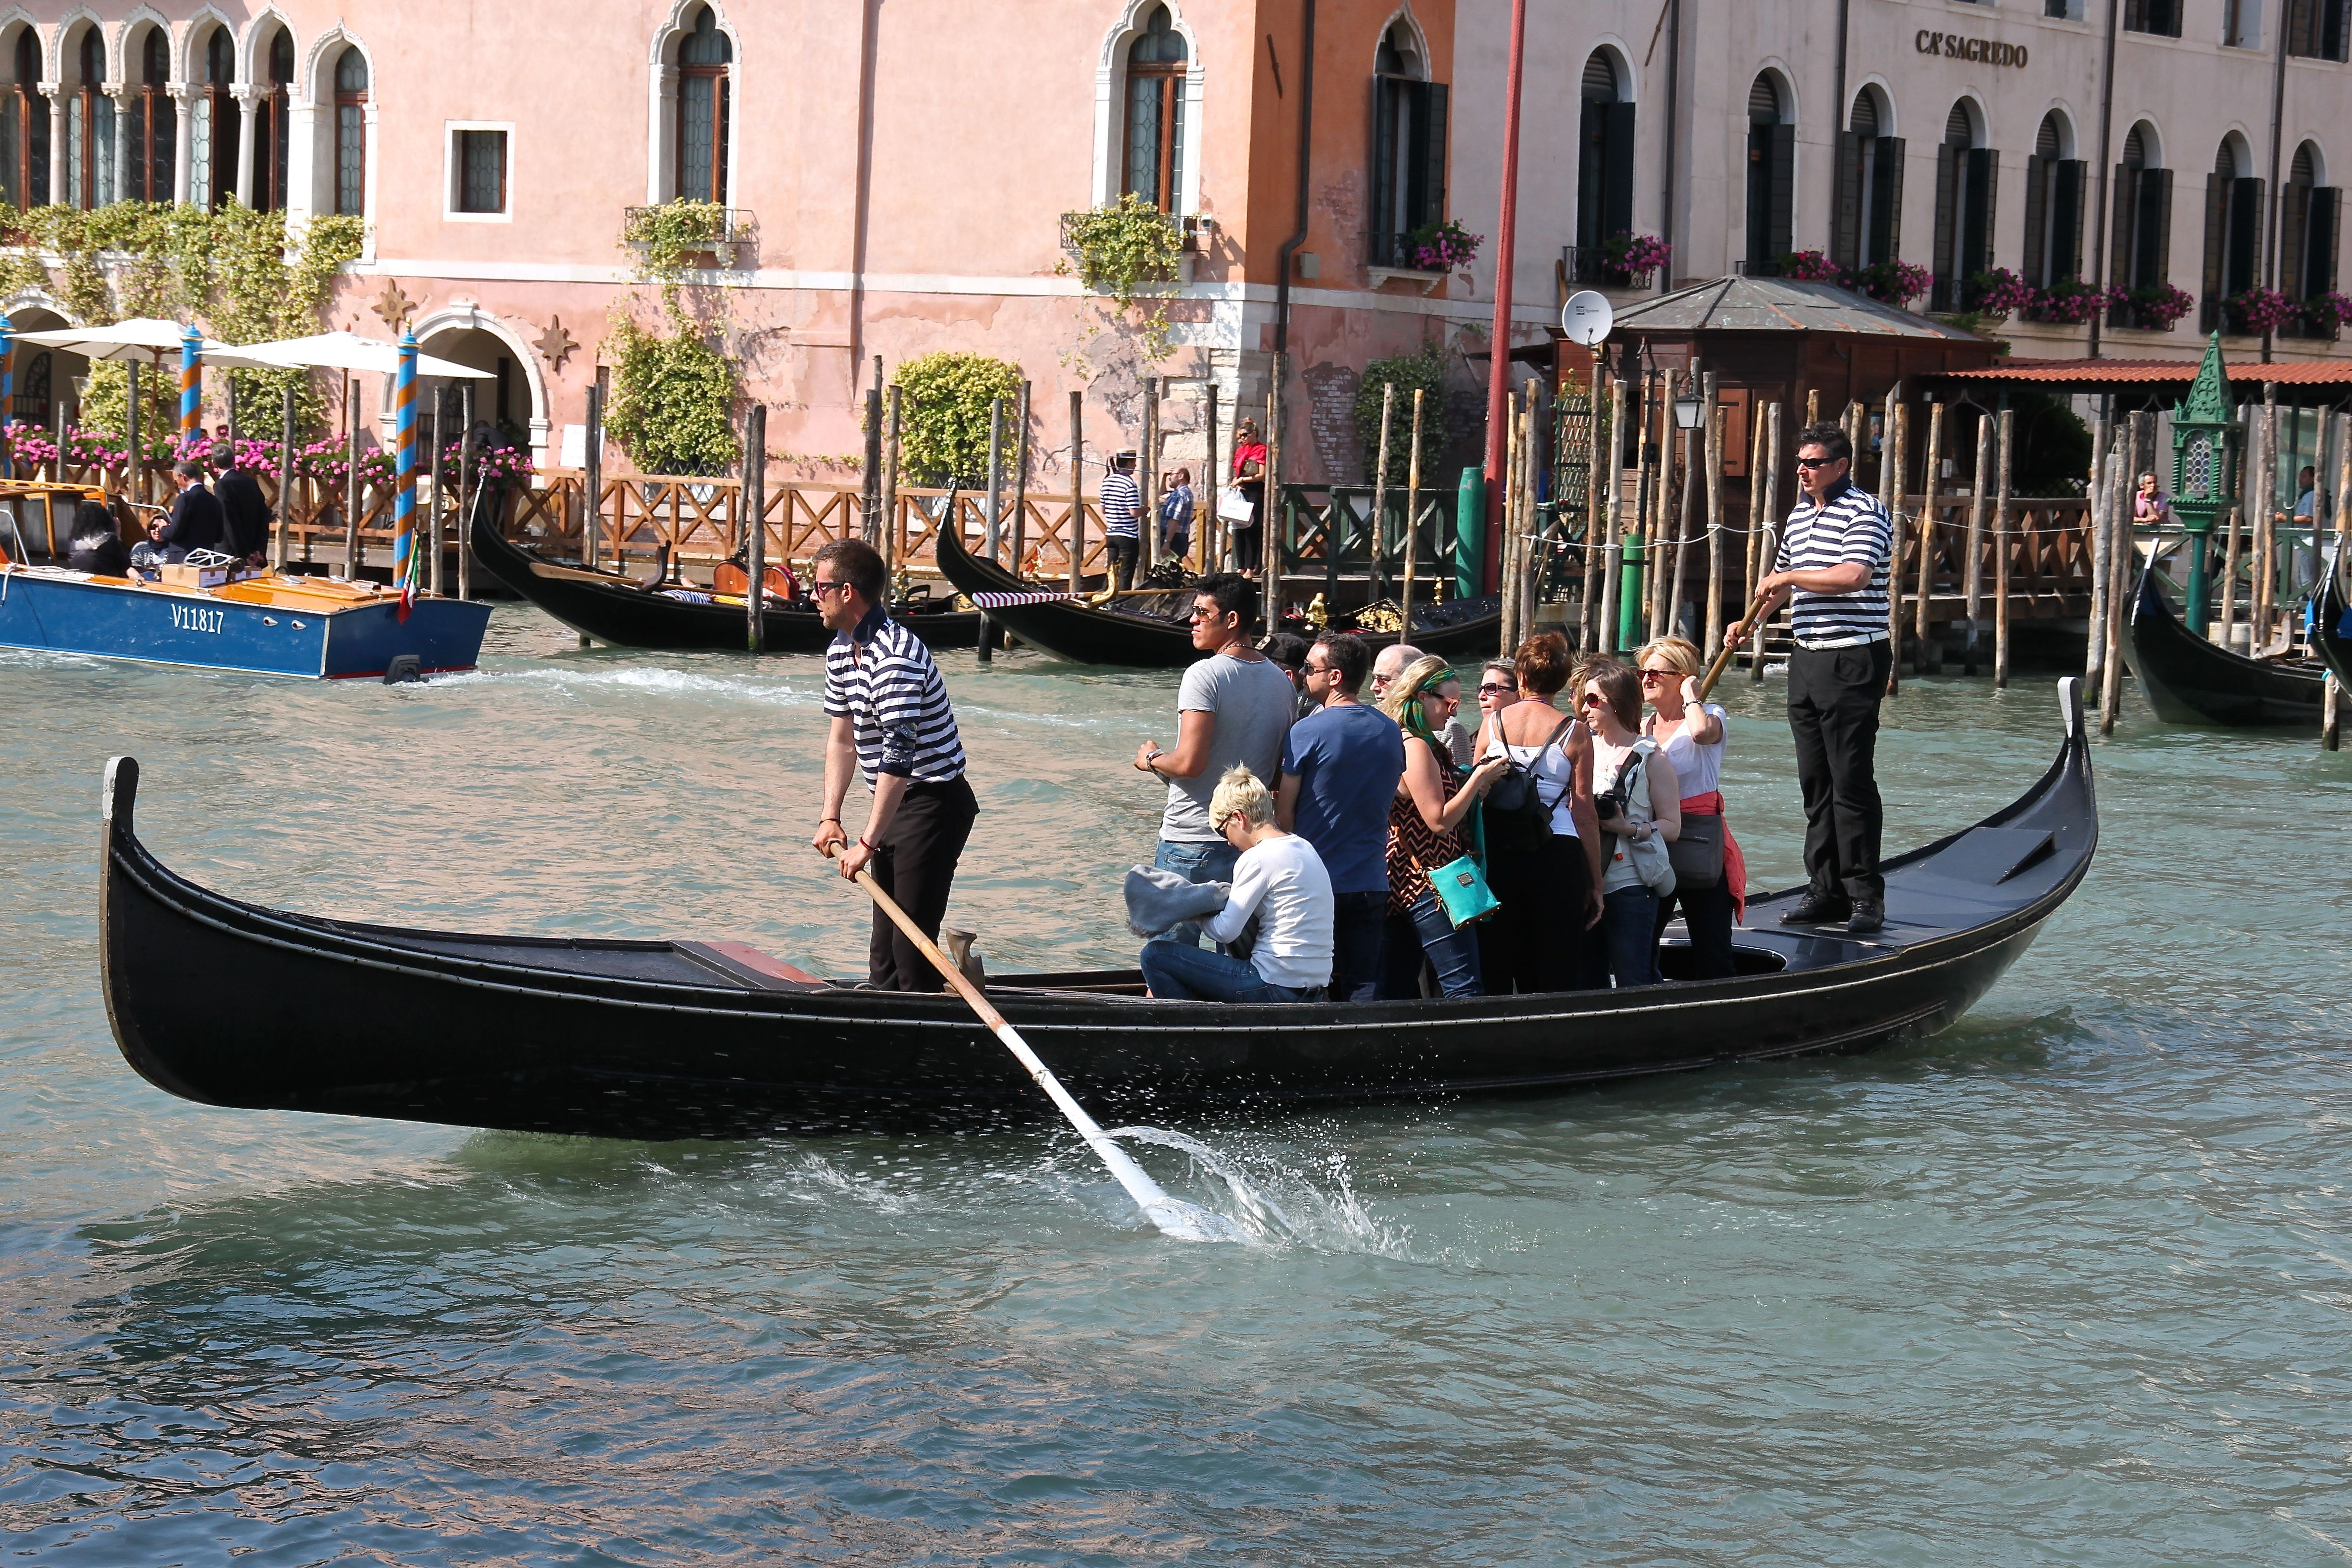 A traghetto gondola crossing the Grand Canal